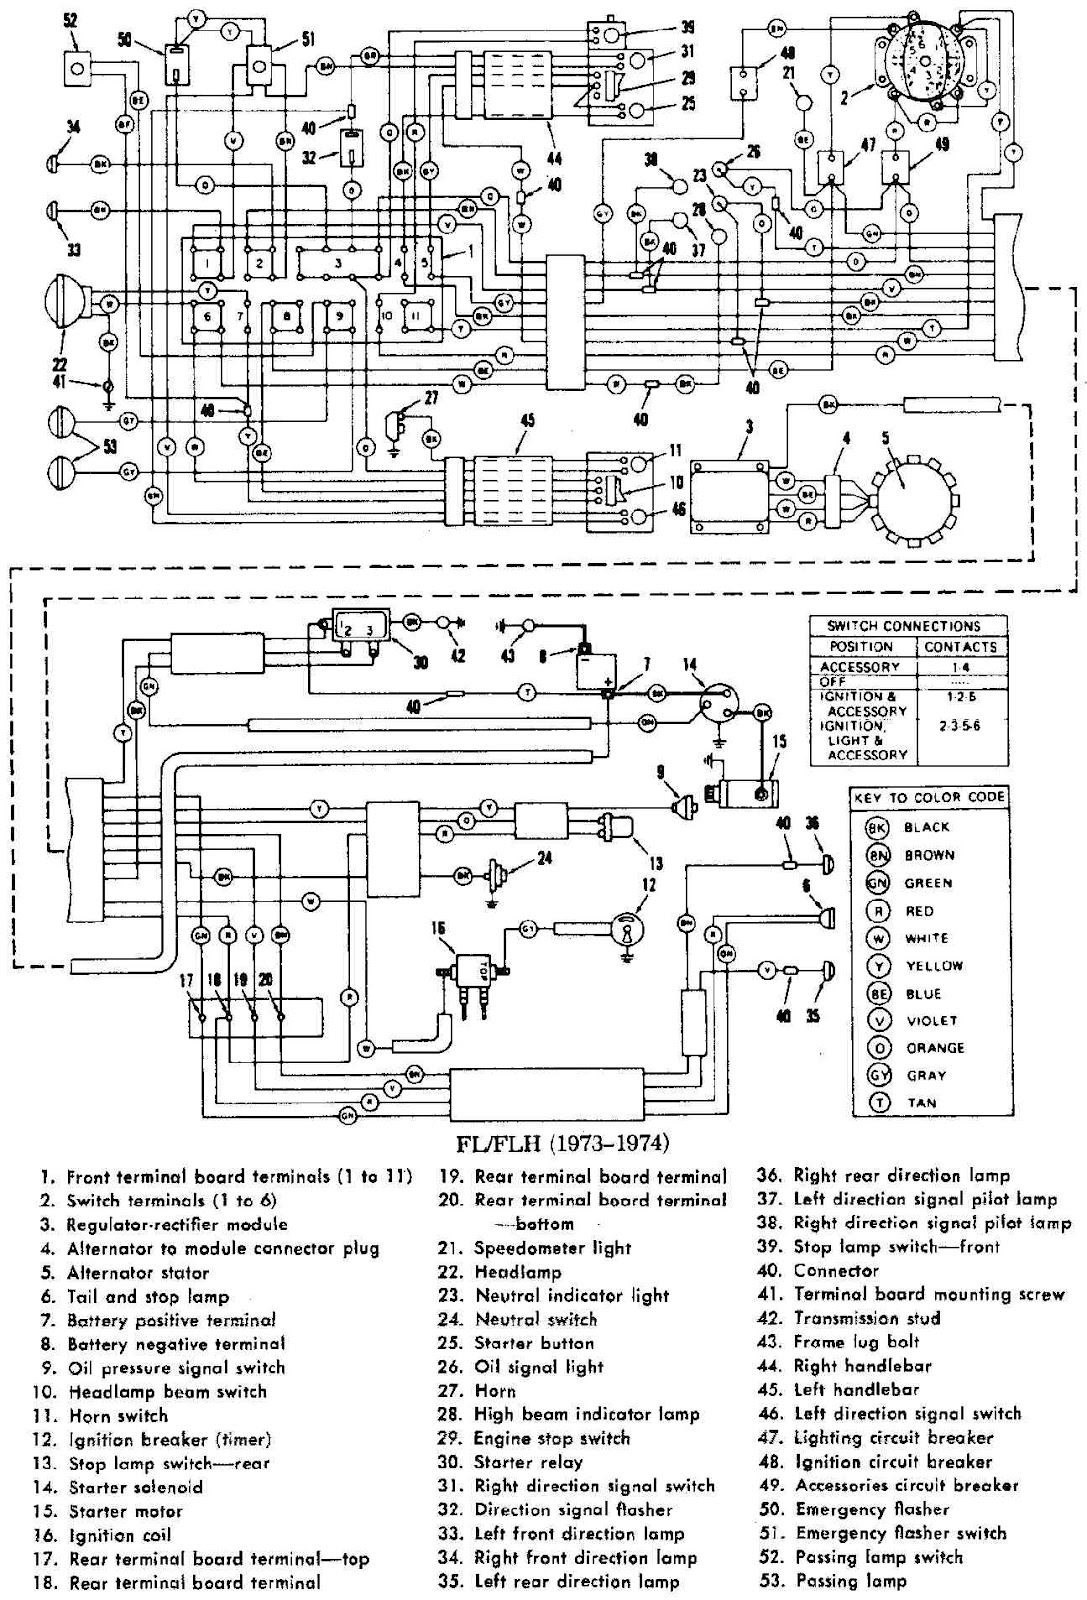 wiring diagram for 1976 glastron boat wiring image 1973 glastron wiring diagram 1973 auto wiring diagram schematic on wiring diagram for 1976 glastron boat